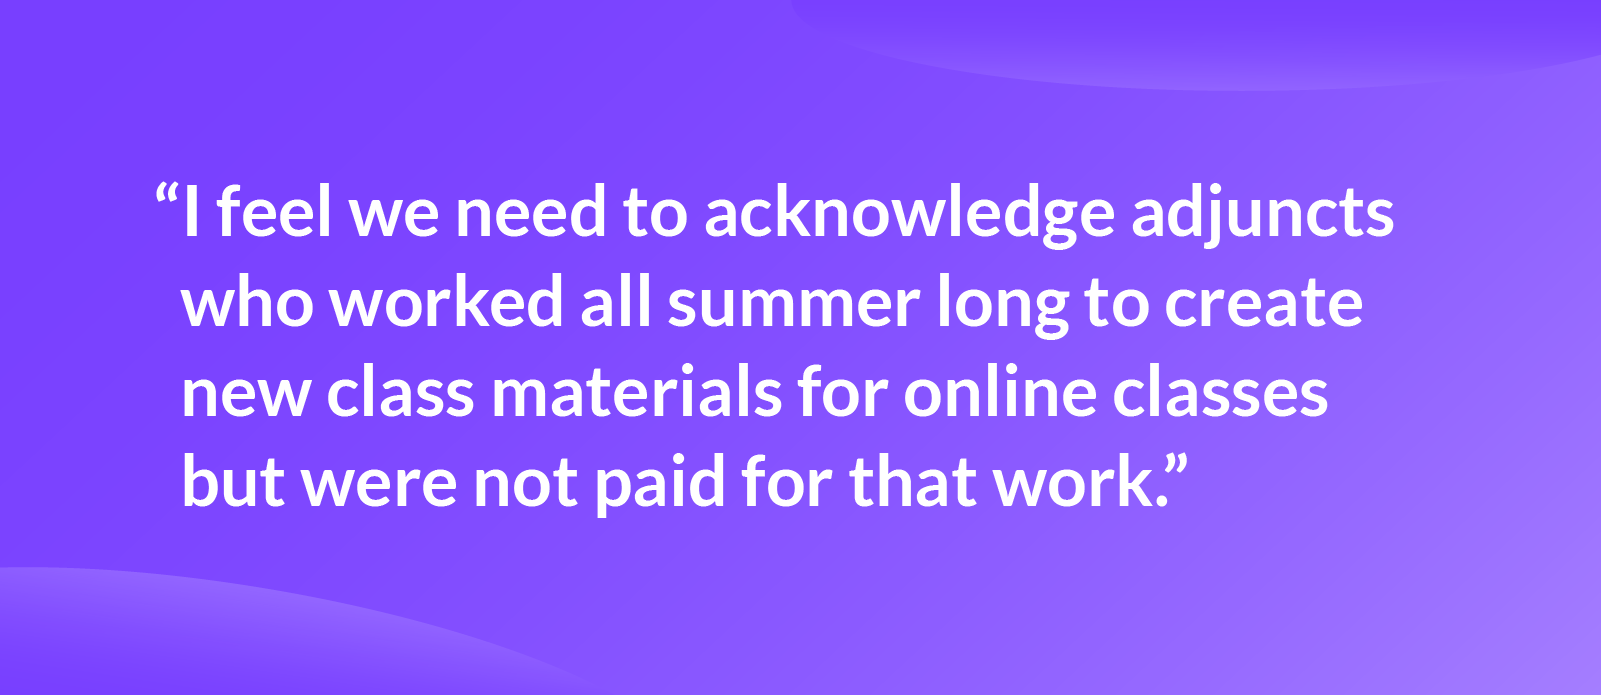 """Quote that reads: """"I feel we need to acknowledge adjuncts who worked all summer long to create new class materials for online classes but were not paid for that work."""""""